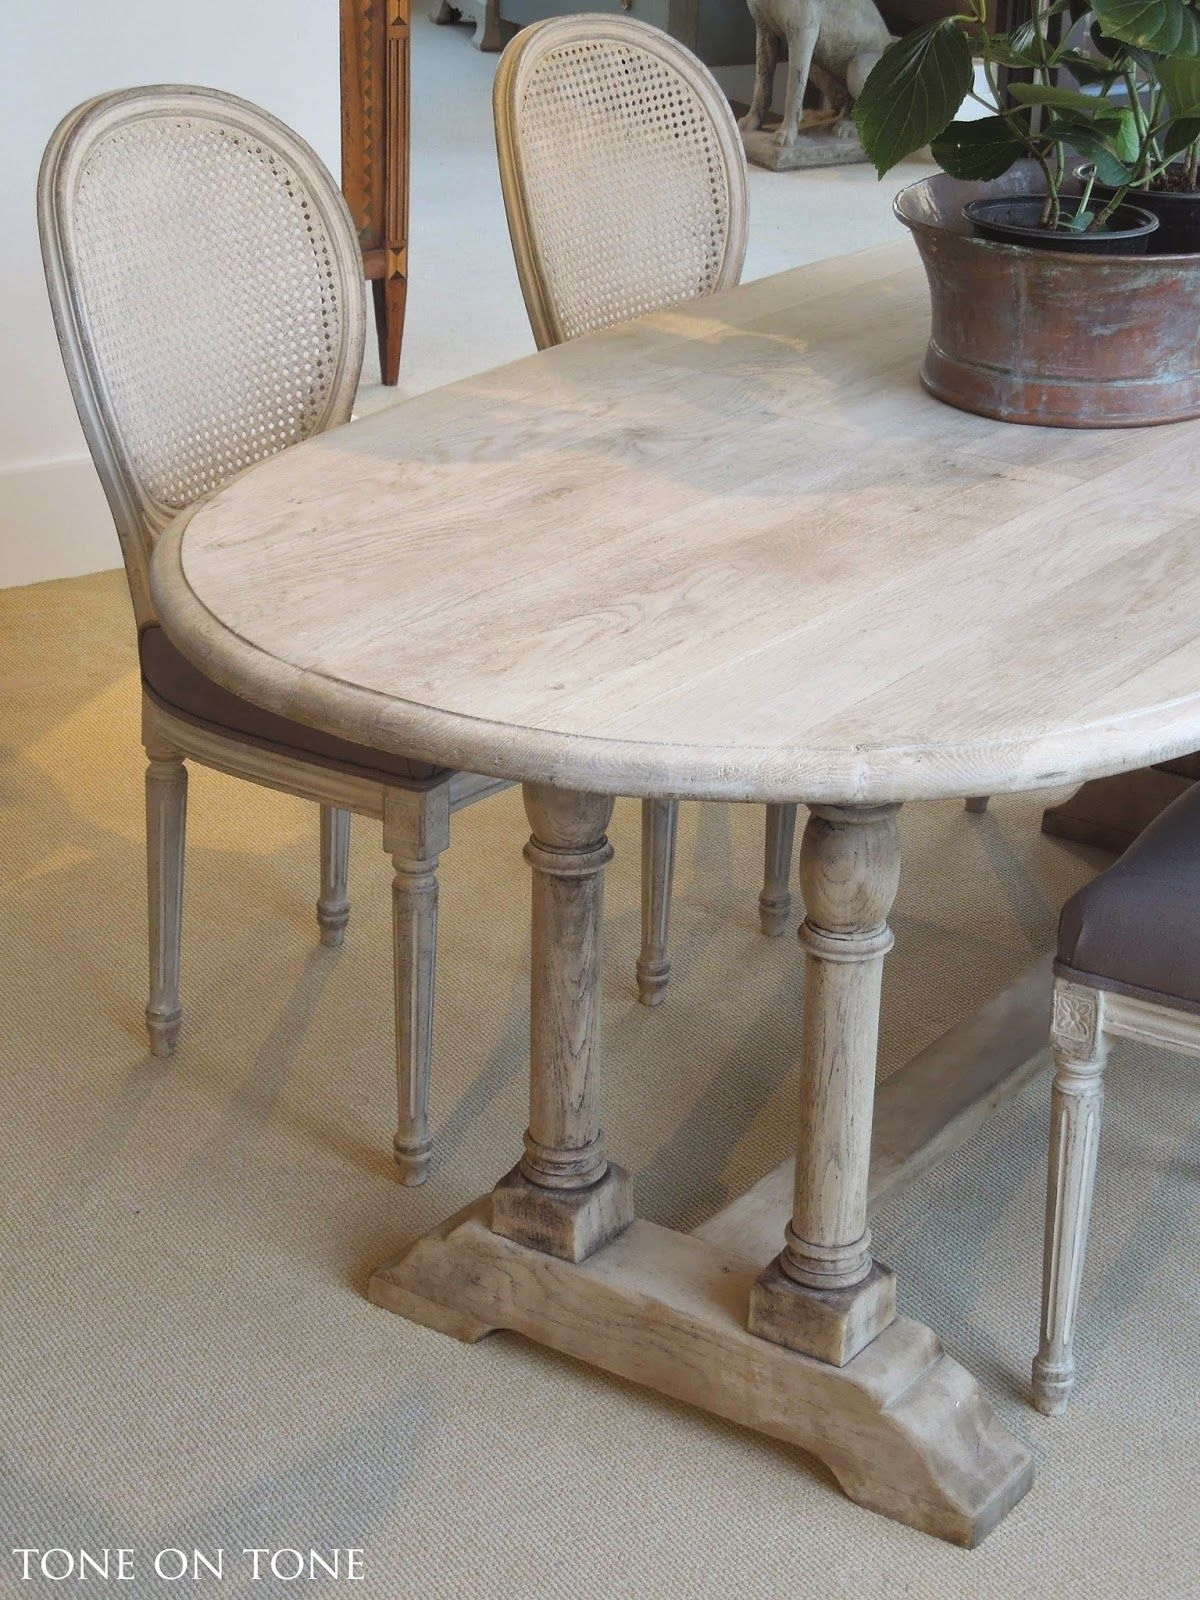 Here Is A 19Th Century Belgian Bleached Oak Dining / Kitchen Table With Best And Newest Helms Round Dining Tables (View 6 of 20)